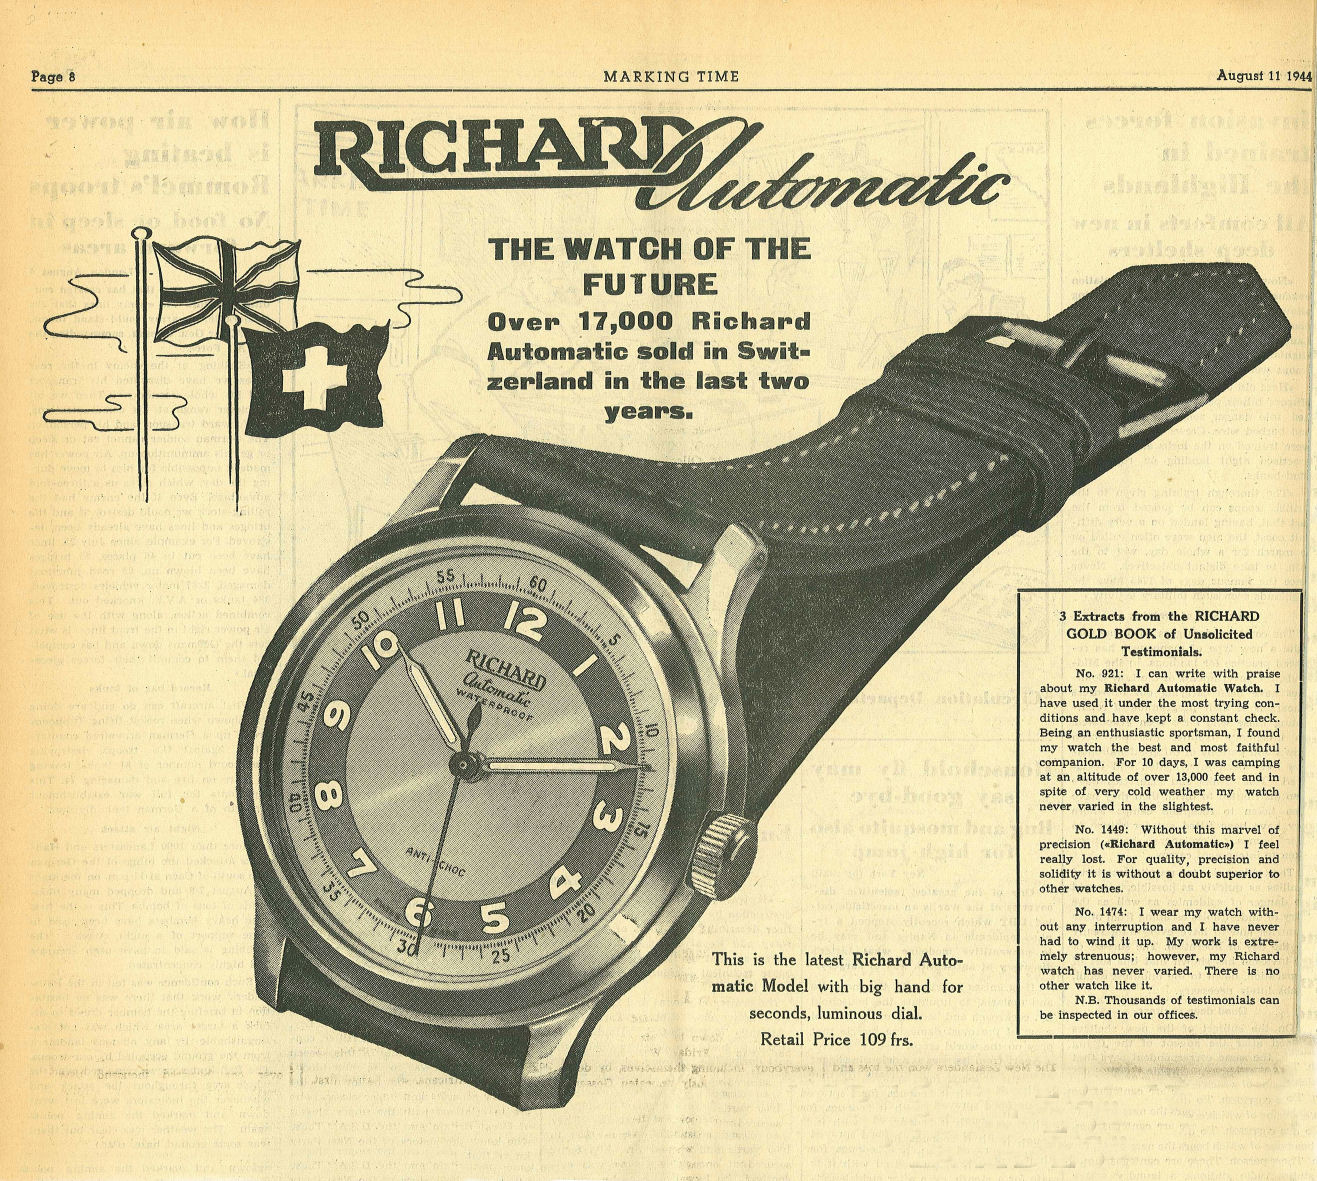 Richard Automatic